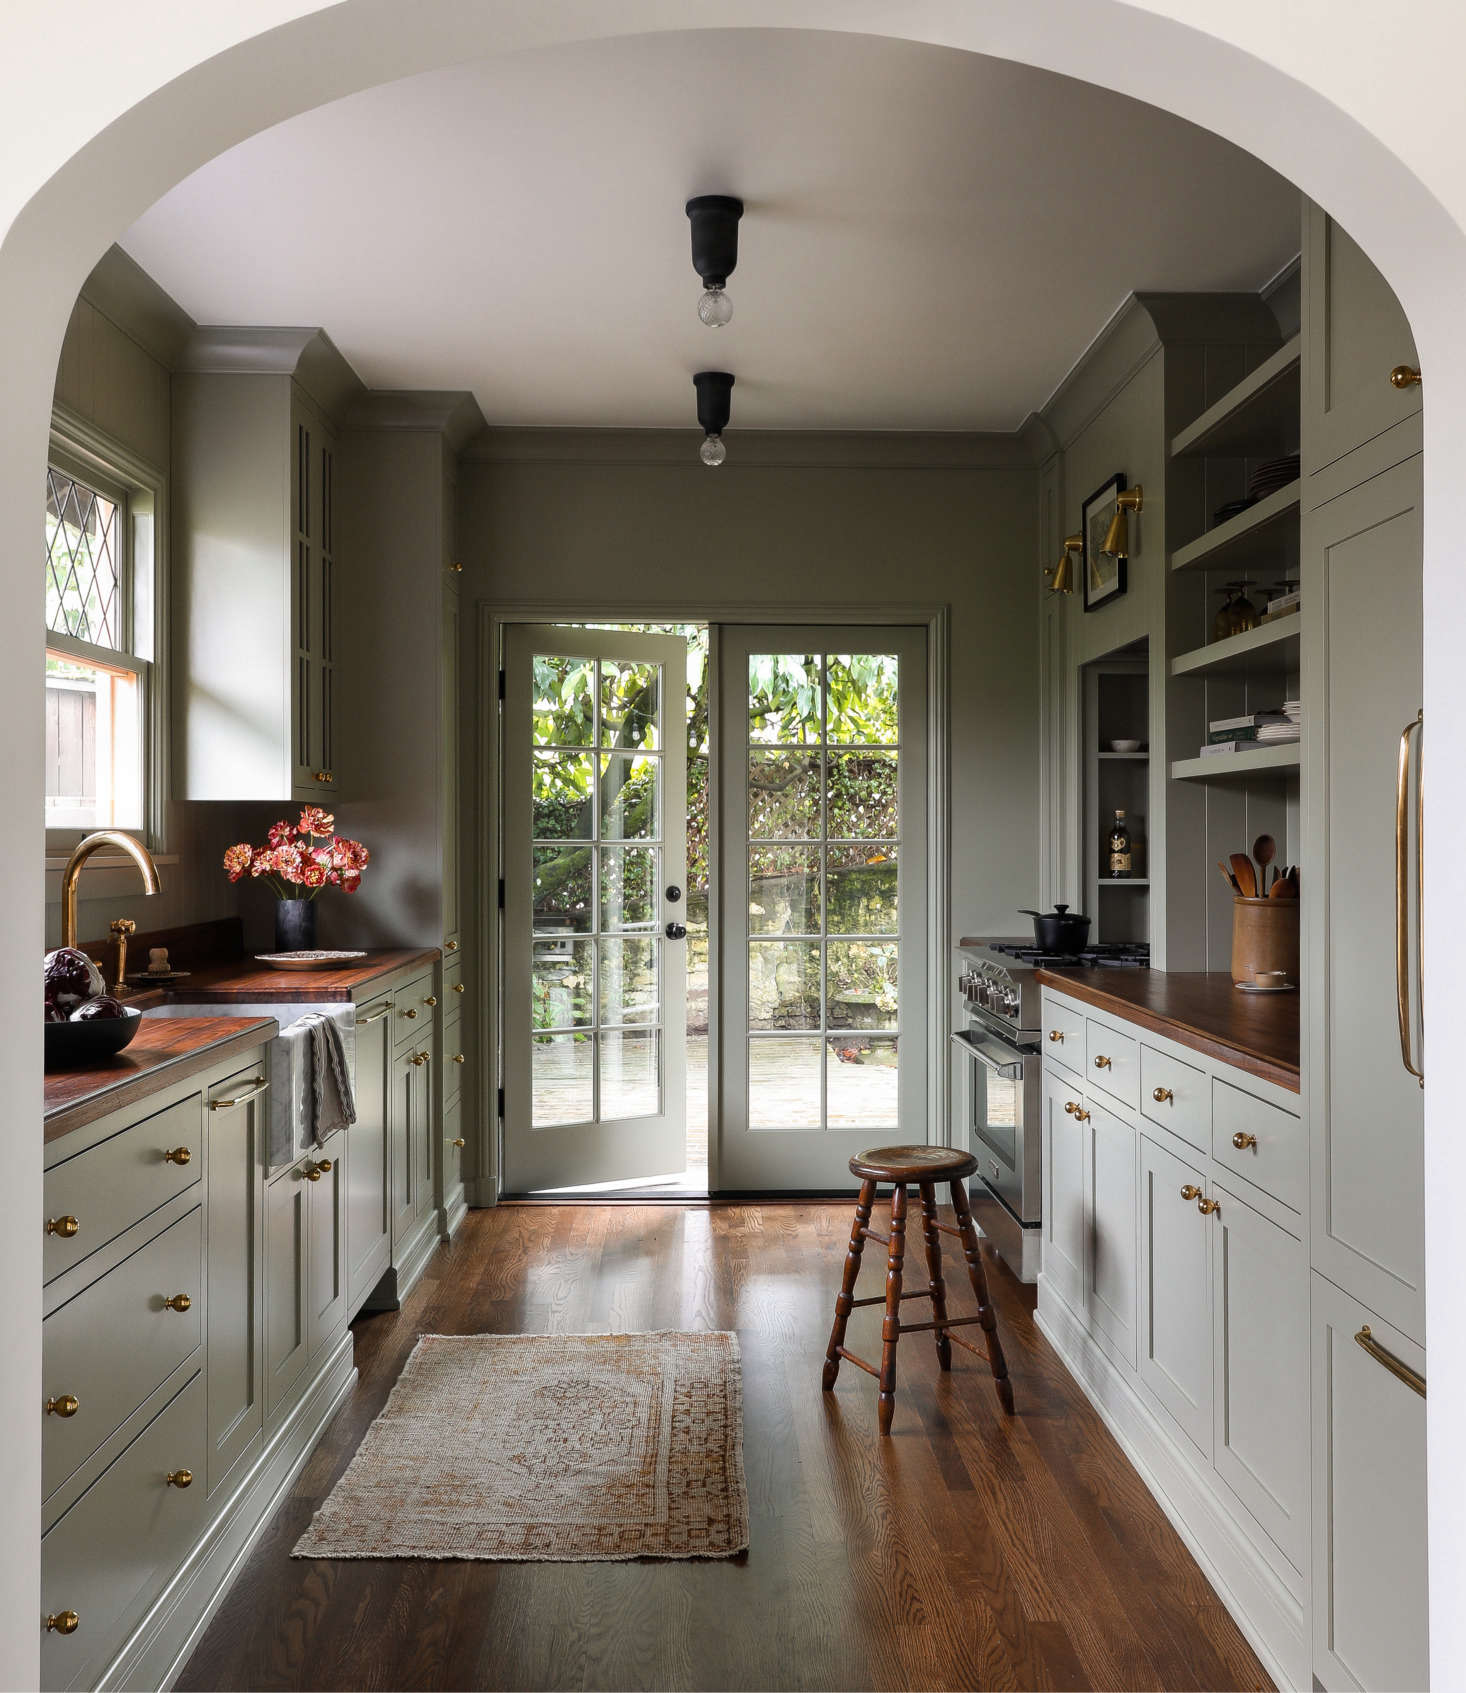 Find out which Farrow & Ball color designer Heidi Caillier chose for this galley kitchen in English-Style in Seattle: A Couple's Longtime Home Gets an Anglo Update. Photograph by Haris Kenjar, courtesy of Heidi Caillier Design.